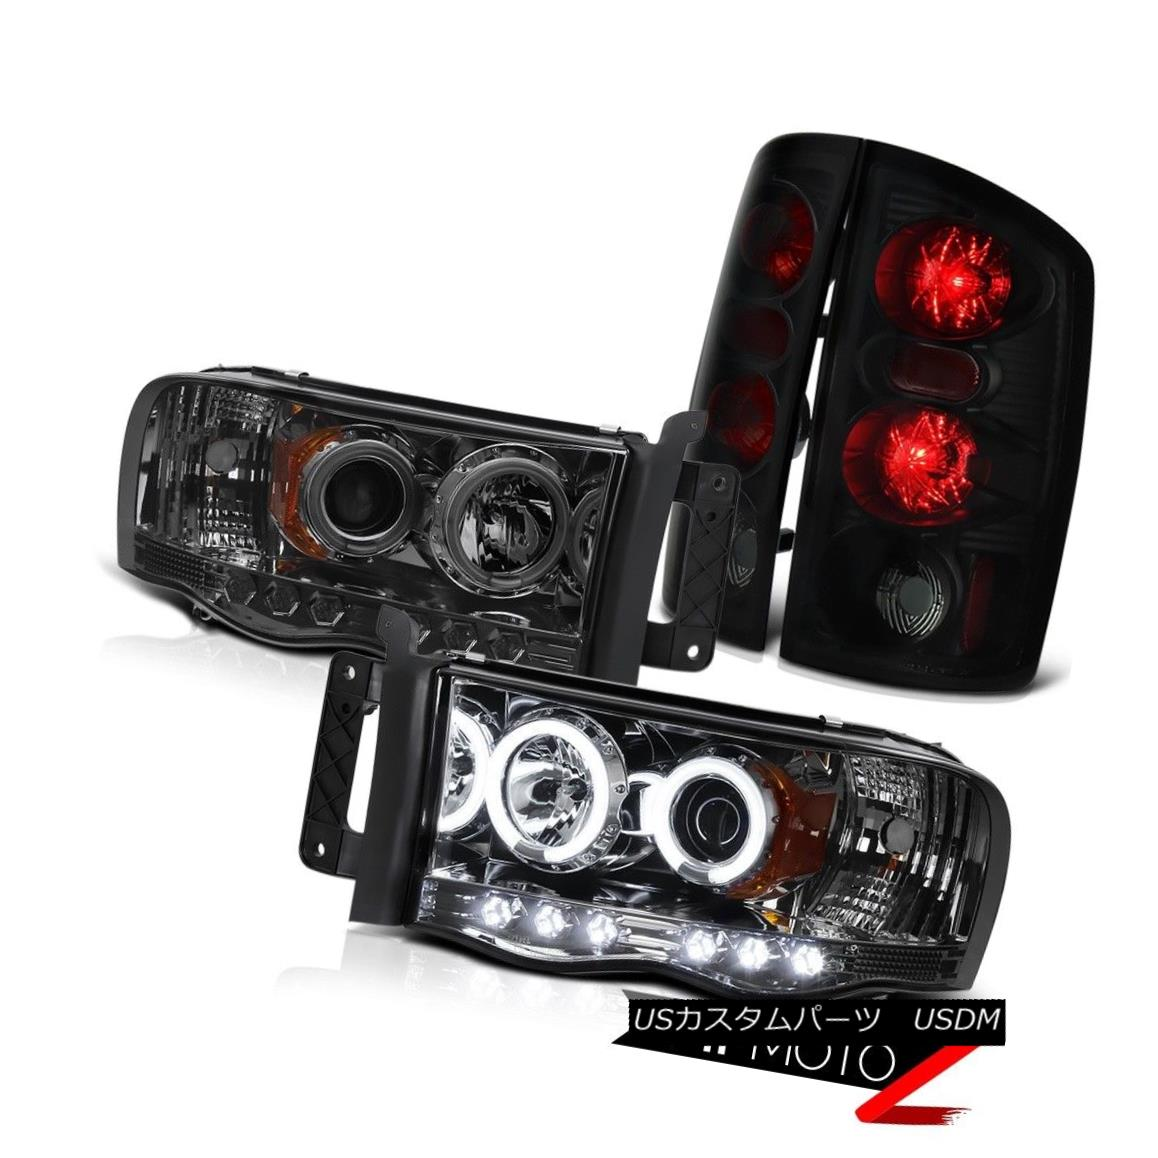 テールライト DODGE Ram 02-05 1500 | 03-05 2500 3500 Smoke Halo LED Headlight Tail Lights CCFL DODGE Ram 02-05 1500 | 03-05 2500 3500 Smoke Halo LEDヘッドライトテールライトCCFL